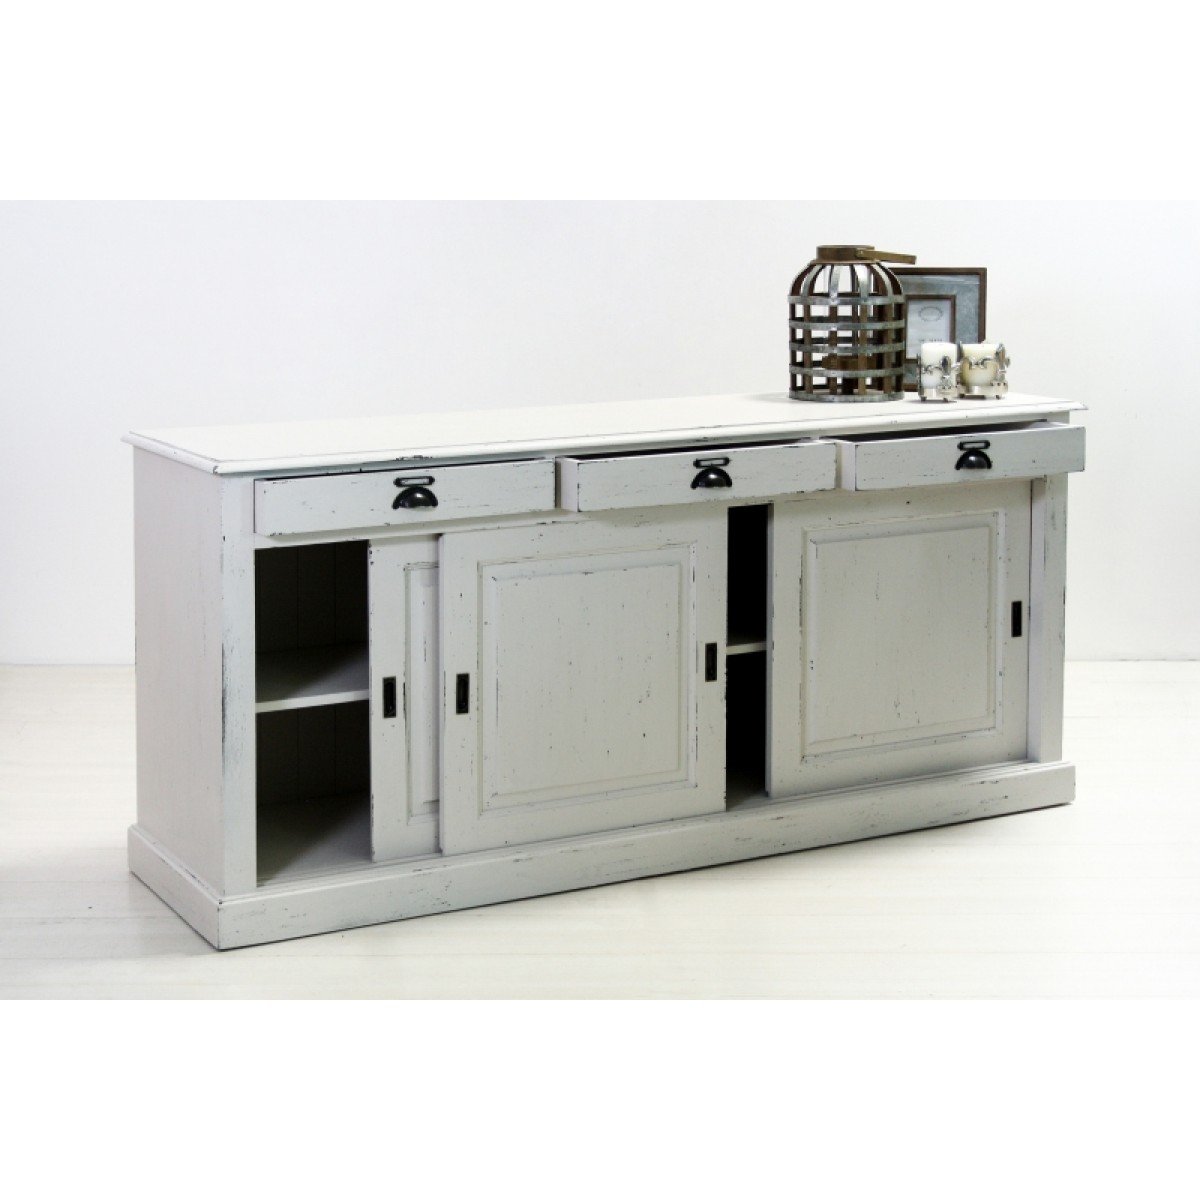 Awesome cassetti scorrevoli cucina contemporary ideas for Credenza cucina